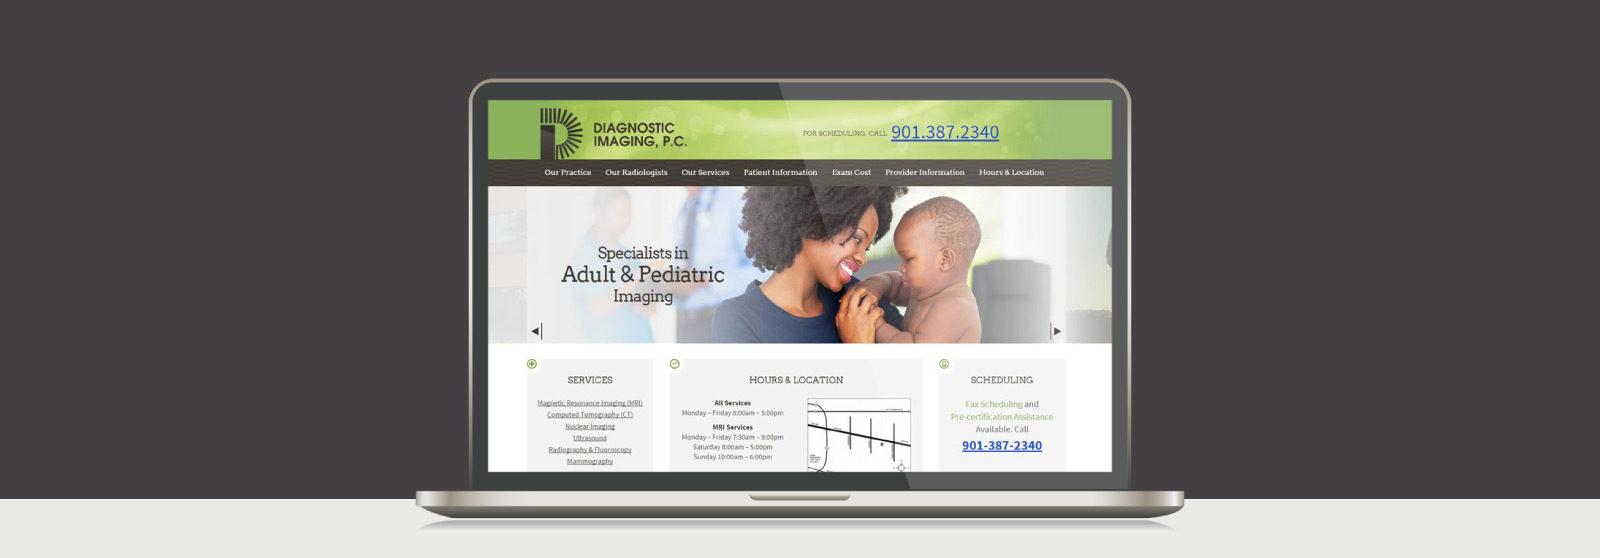 Diagnostic Imaging Website